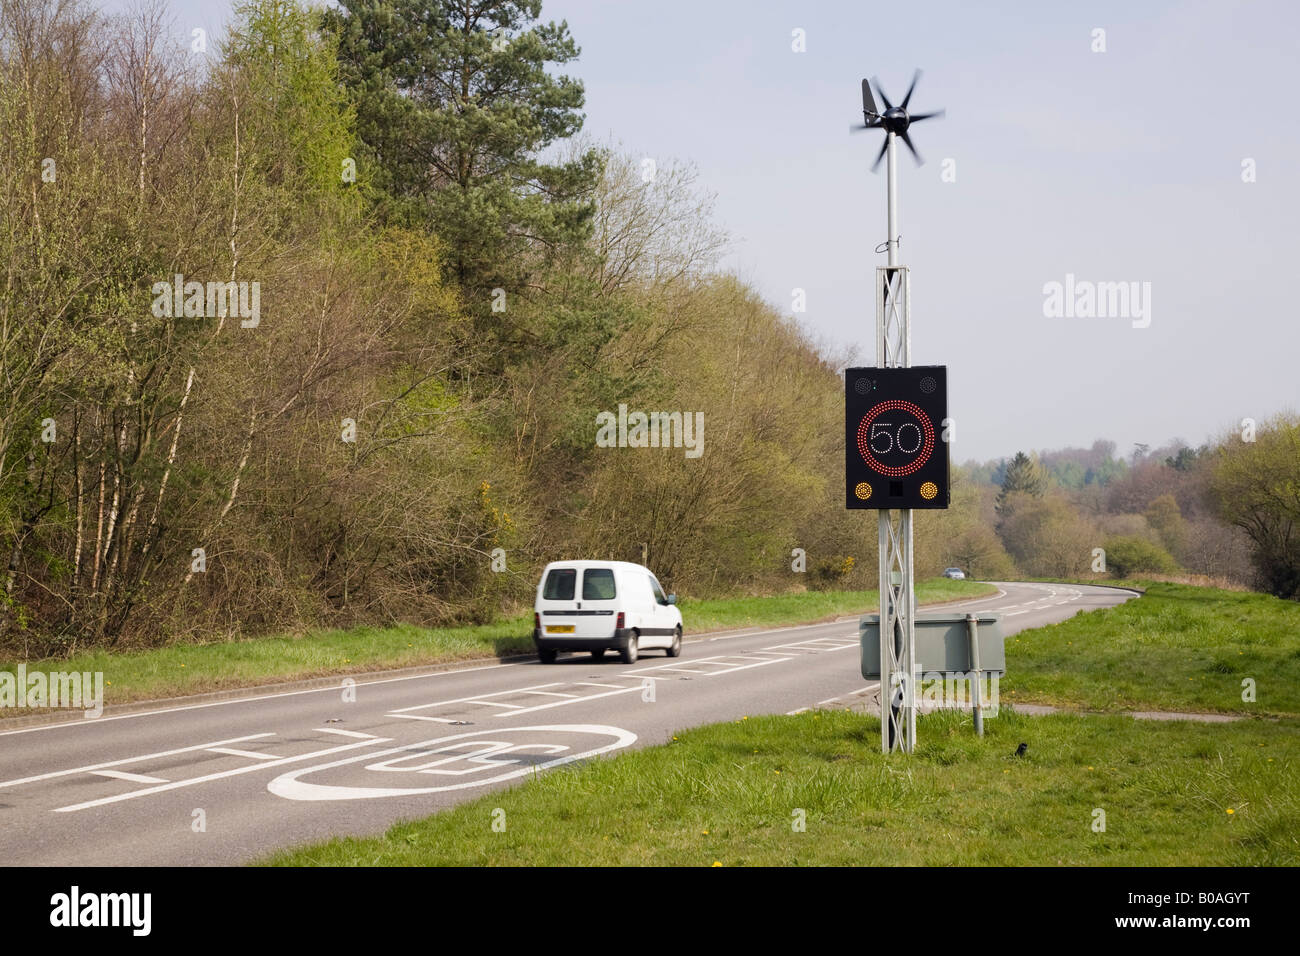 West Sussex England UK Wind powered 50 mph speed sign illuminated by vehicle on country main road Stock Photo